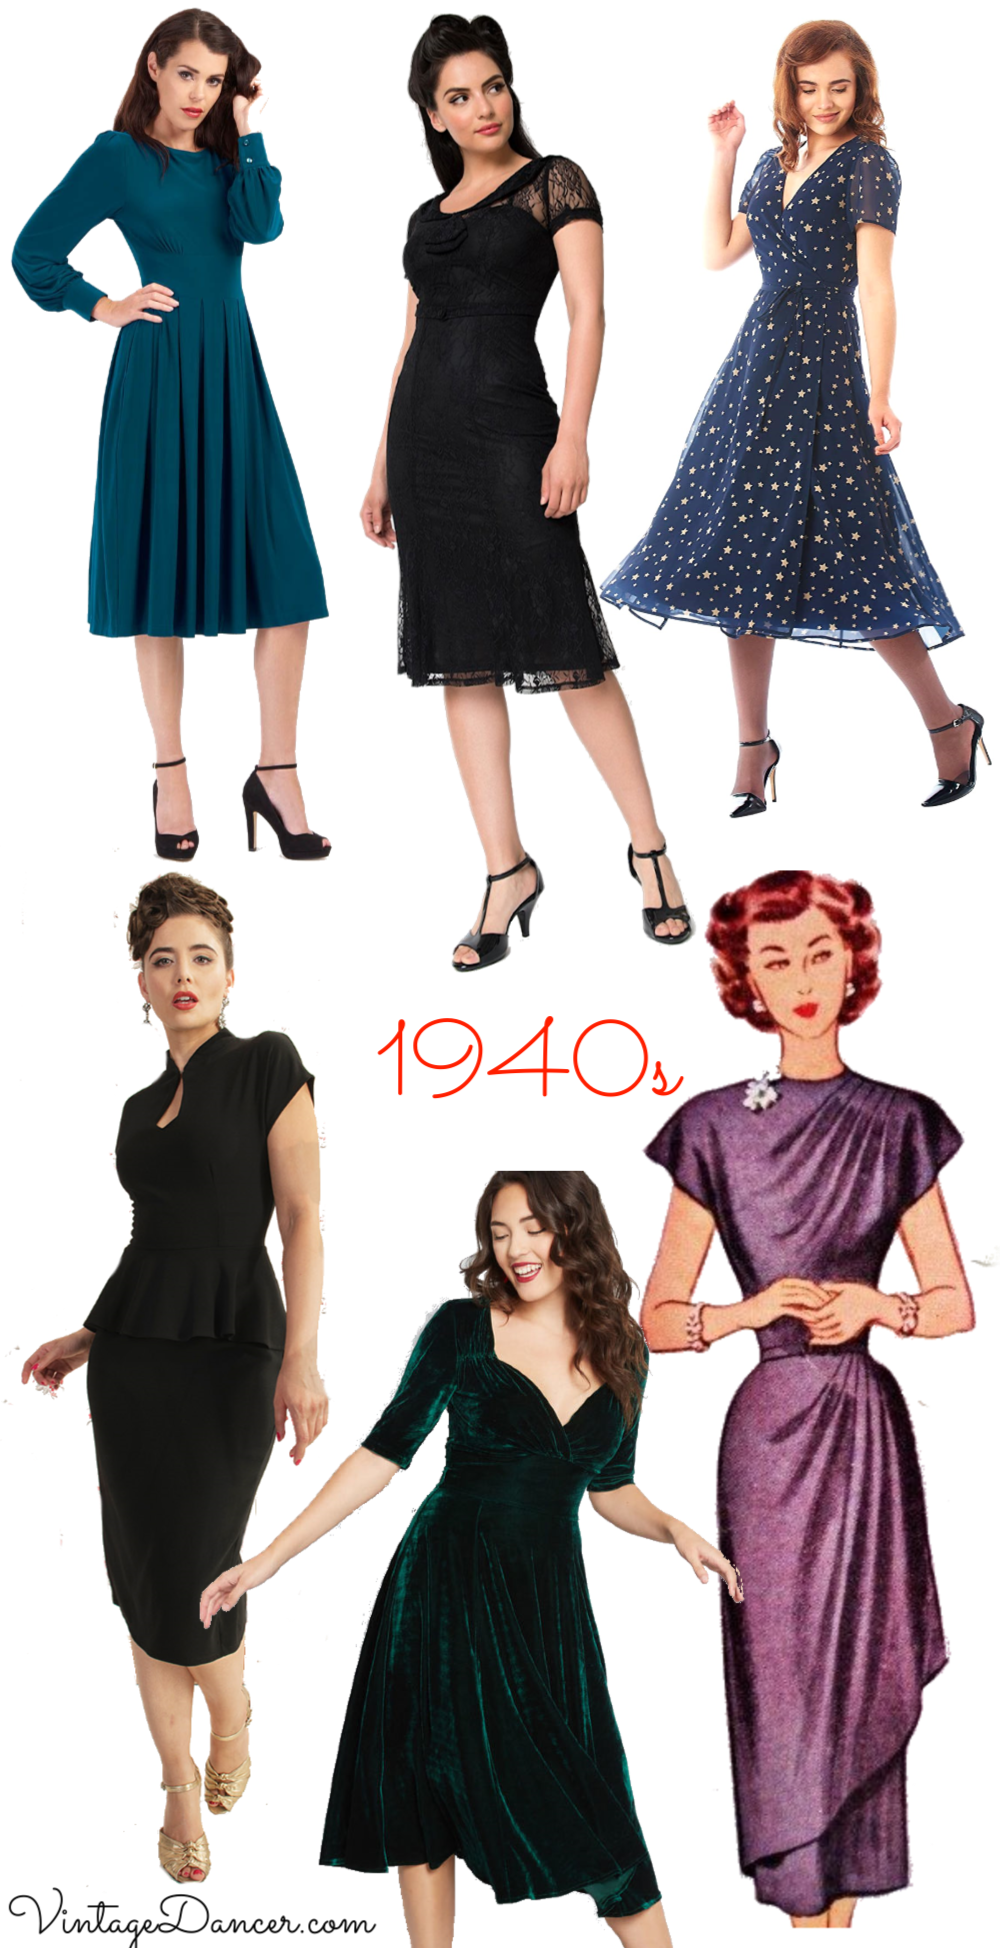 I Dresses Dresses Cocktail 2018 Kjoler Party 1940s 8TfRwnxI